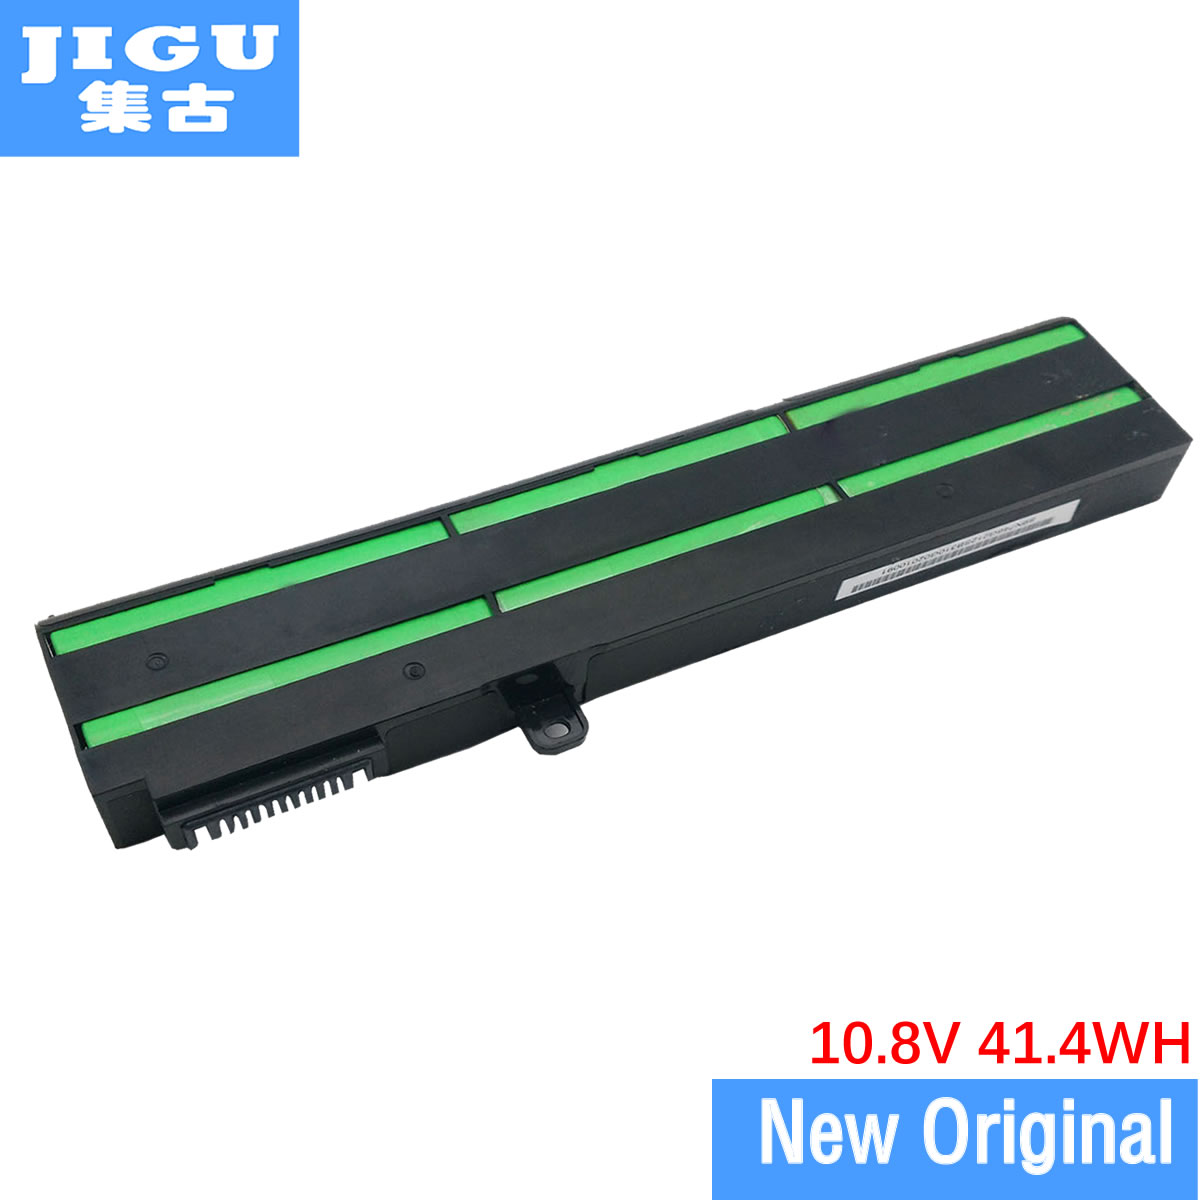 JIGU ORIGNAL laptop battery 3ICR19/65-2 3ICR19/66-2 BTY-M6H FOR MSI  GP62X GP72 GP72VR GP72X MS-16J3 MS-16J5L MS-16J6 MS-1795 jigu bty l76 ms 1771 original laptop battery for msi gs70 2pc 2pe 2qc 2qd 2qe for medion x7613 md98802 for haier 7g 700